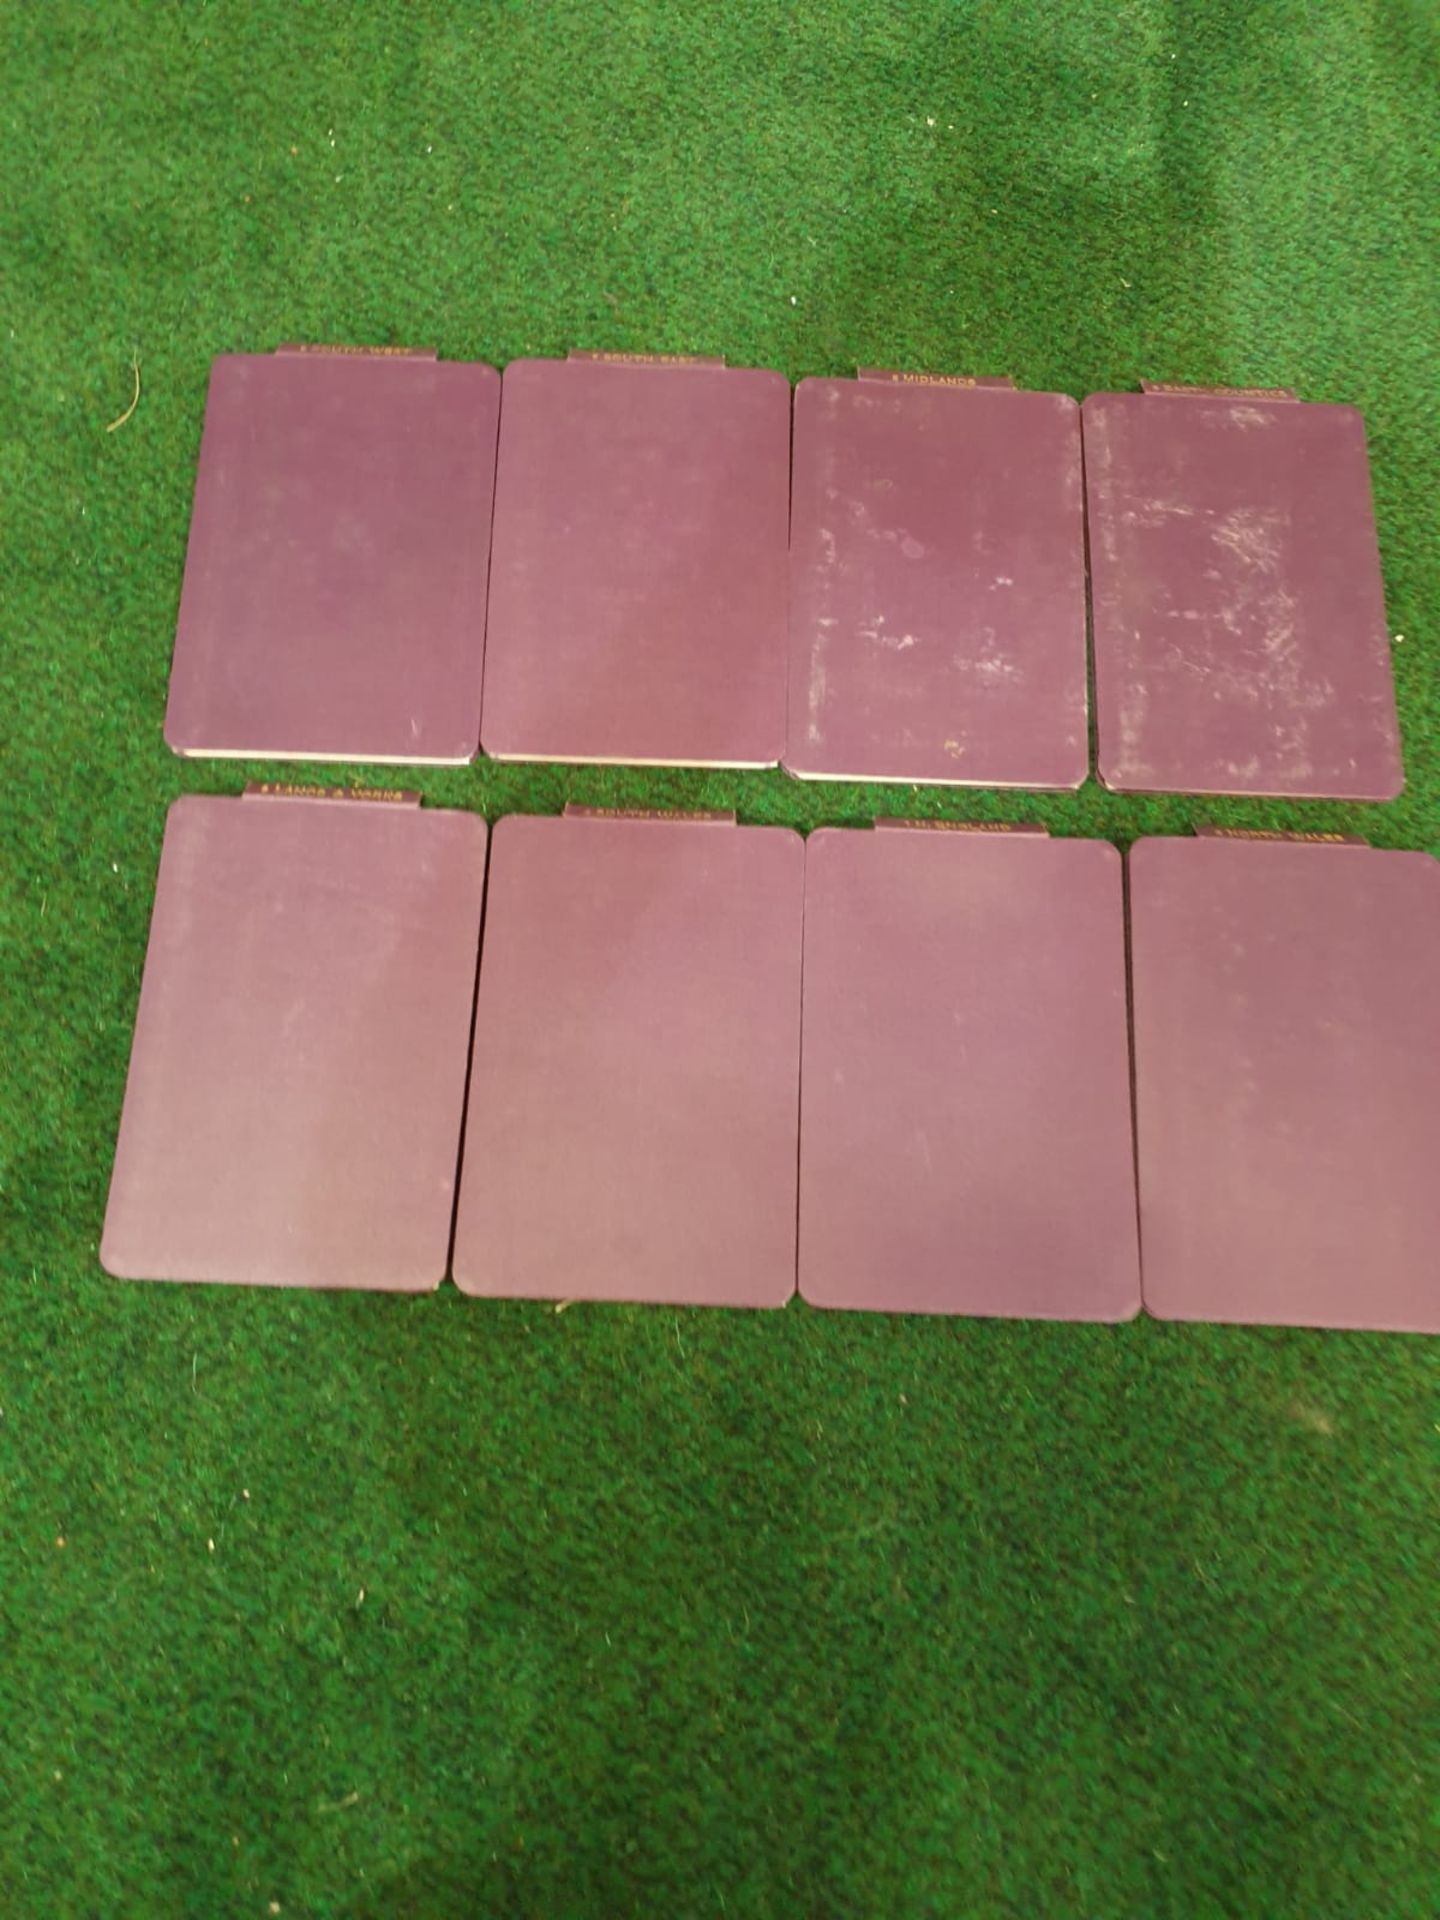 A set of 8 G.W. Bacon & Co VintageLarge Print Road maps in leather slipcase Circa. 1910 - Image 10 of 12